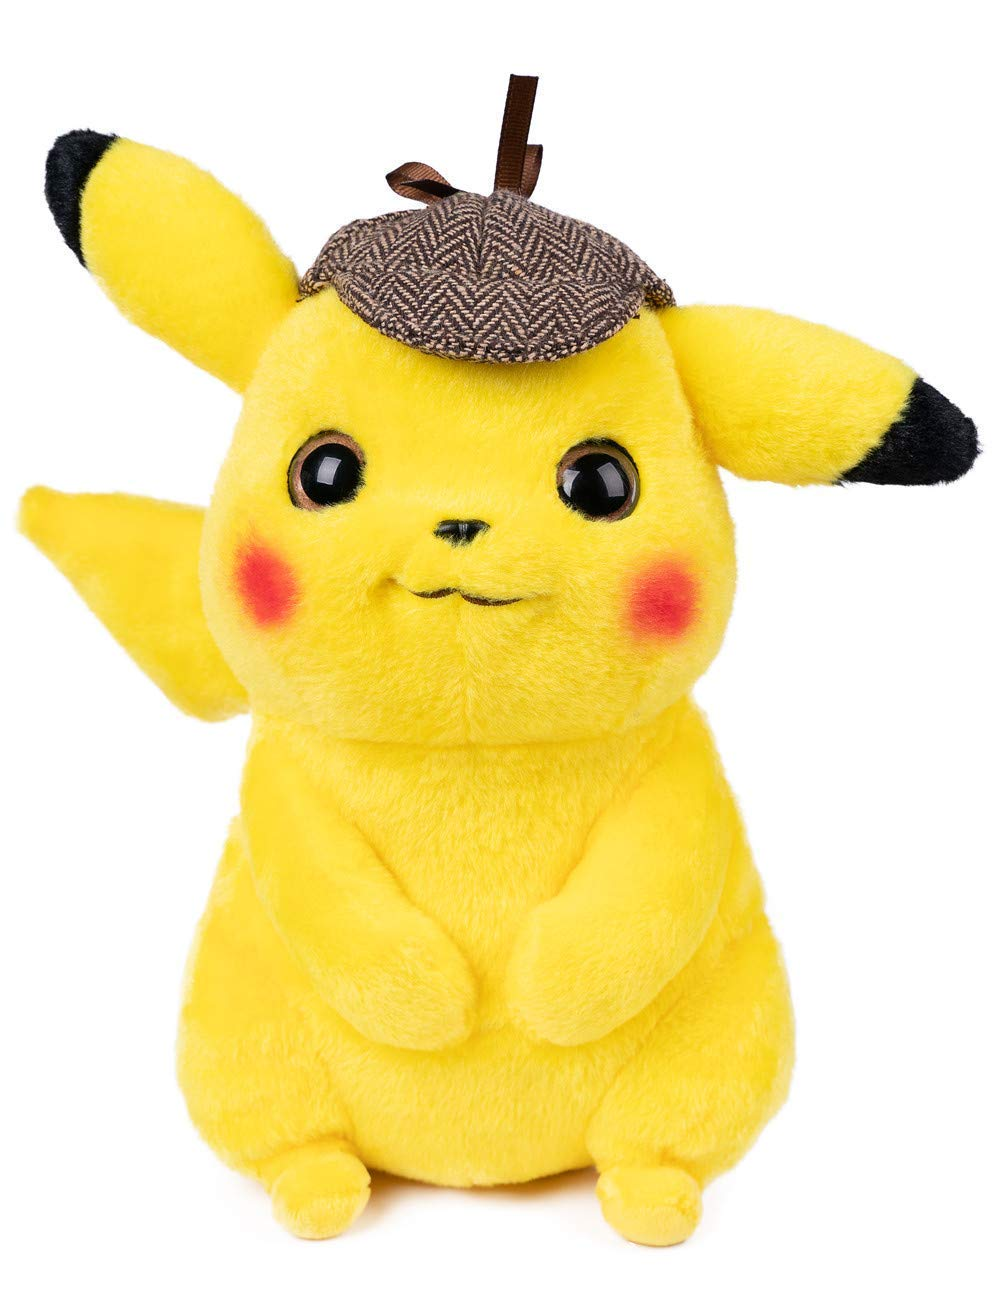 Detective Pikachu Plush Stuffed Animal Toy - 9.5'' (Not Vacuum Packed ) by Vabao